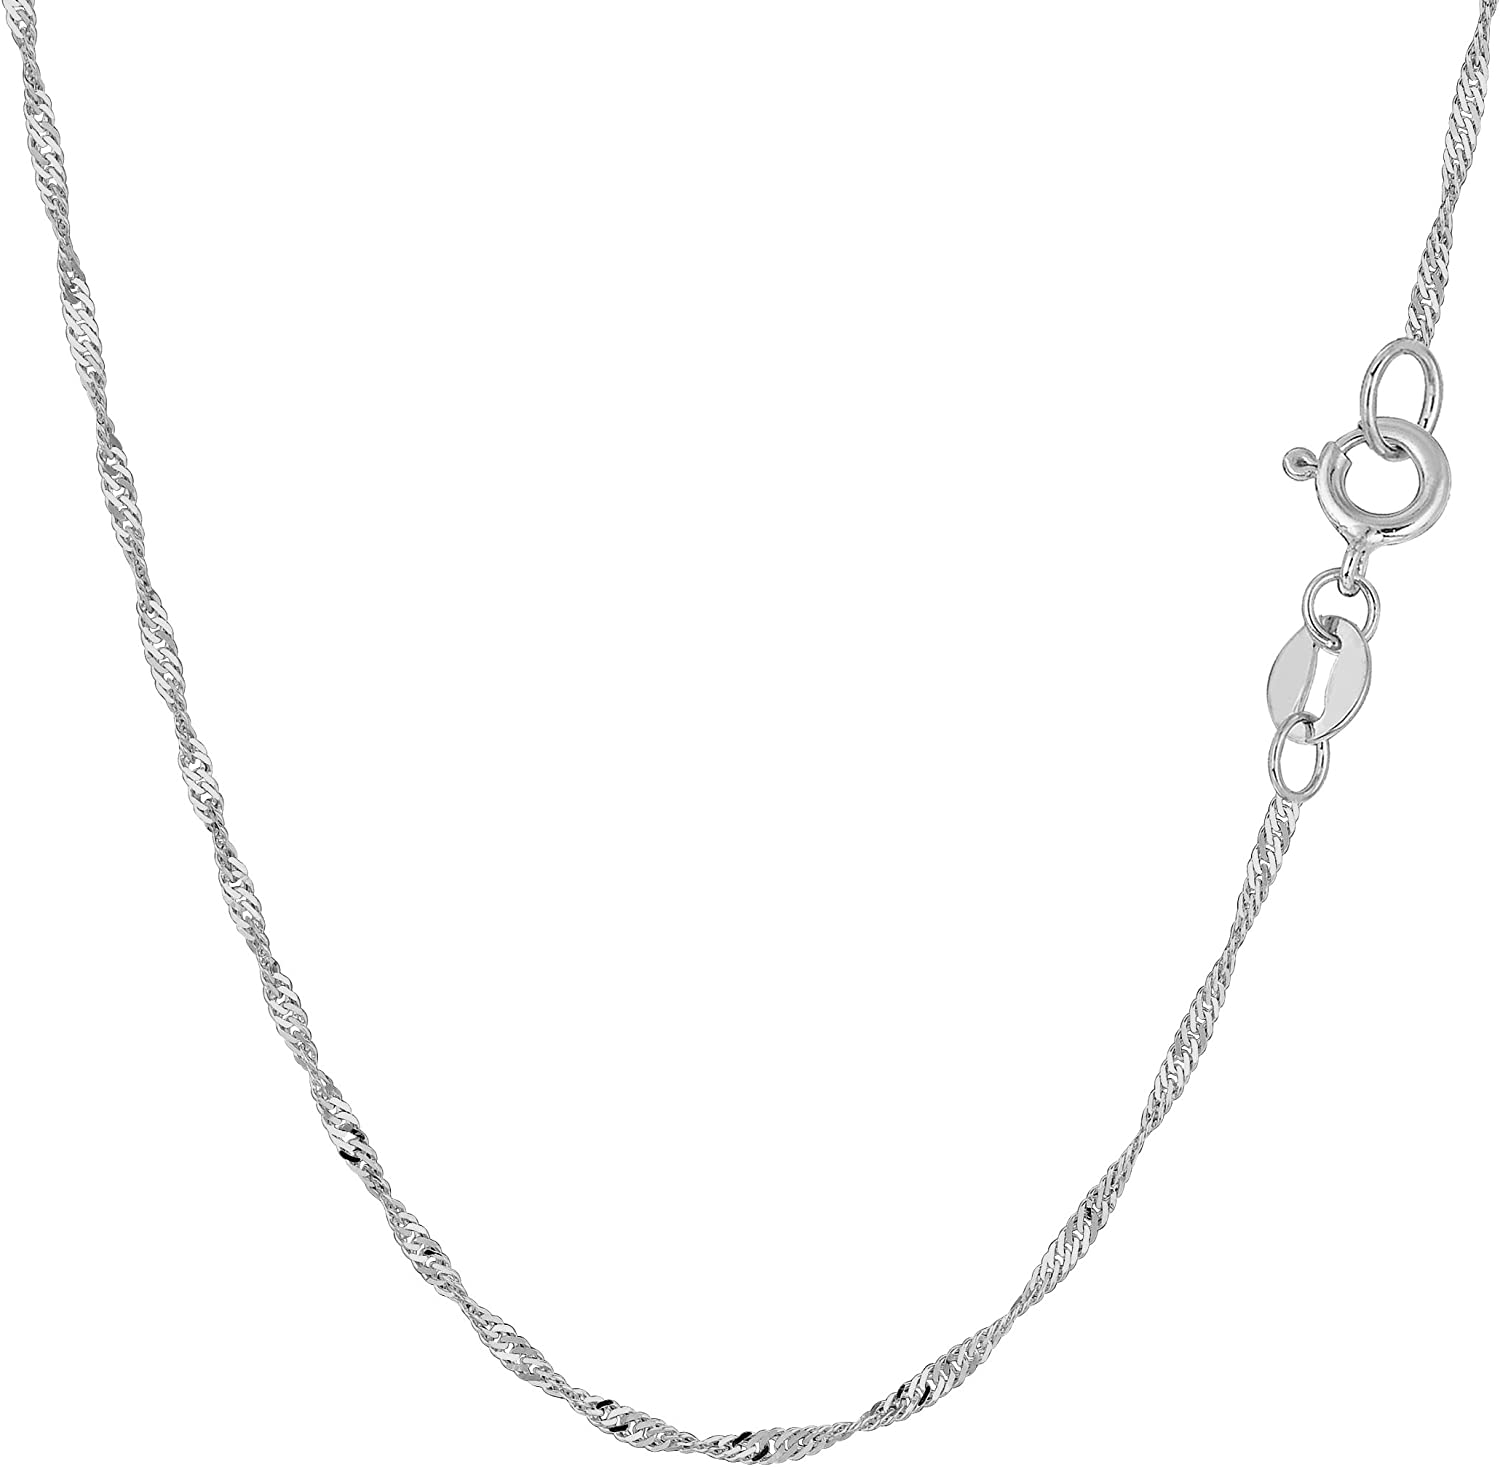 14k White Gold Singapore Chain Necklace, 1.5mm